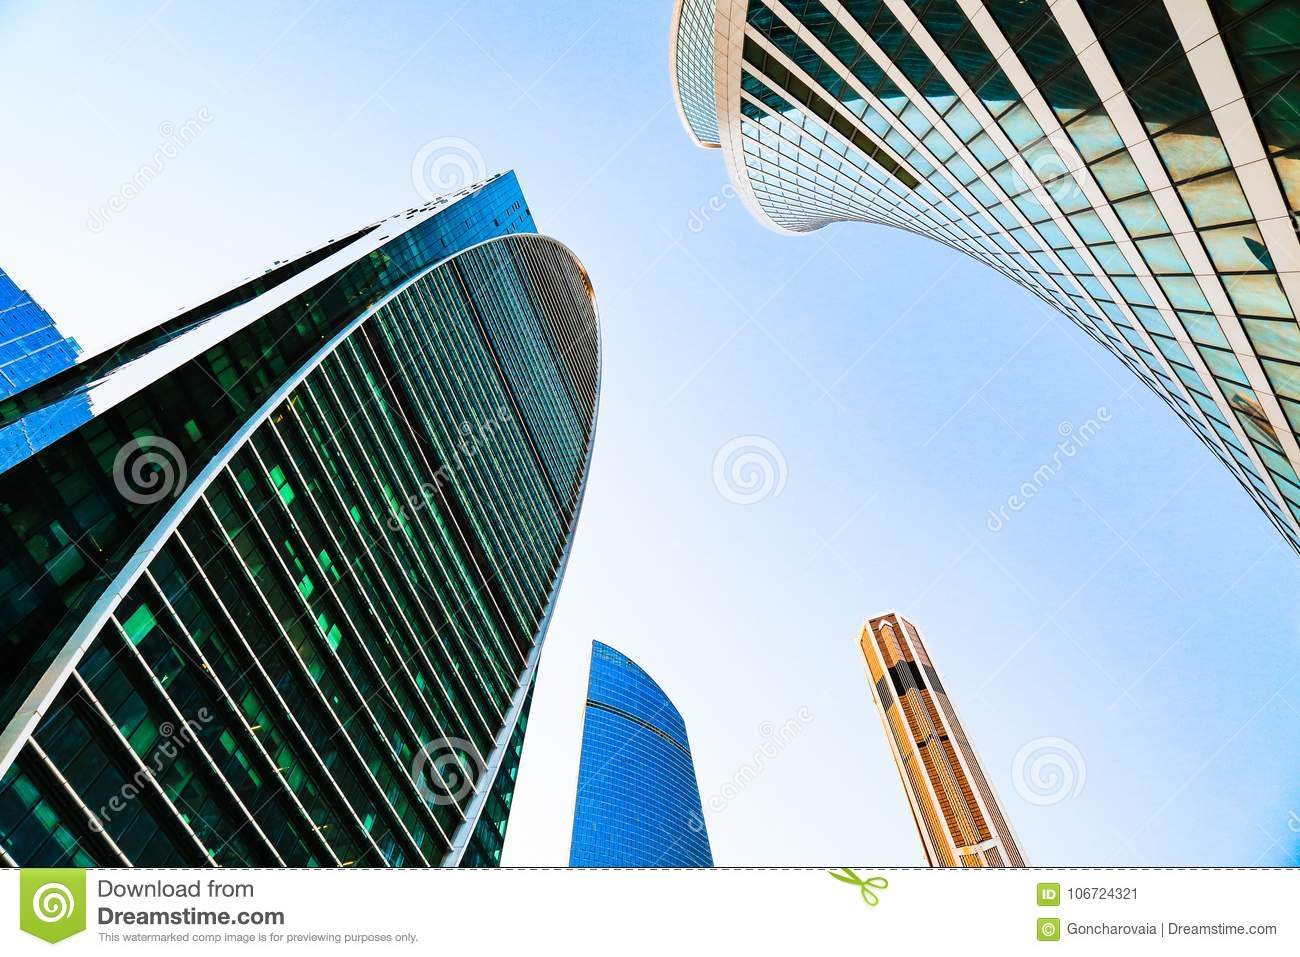 District of business centers. Glass skyscrapers facade. Moscow city, Russia. Street exterior. Modern office building. Urban view.